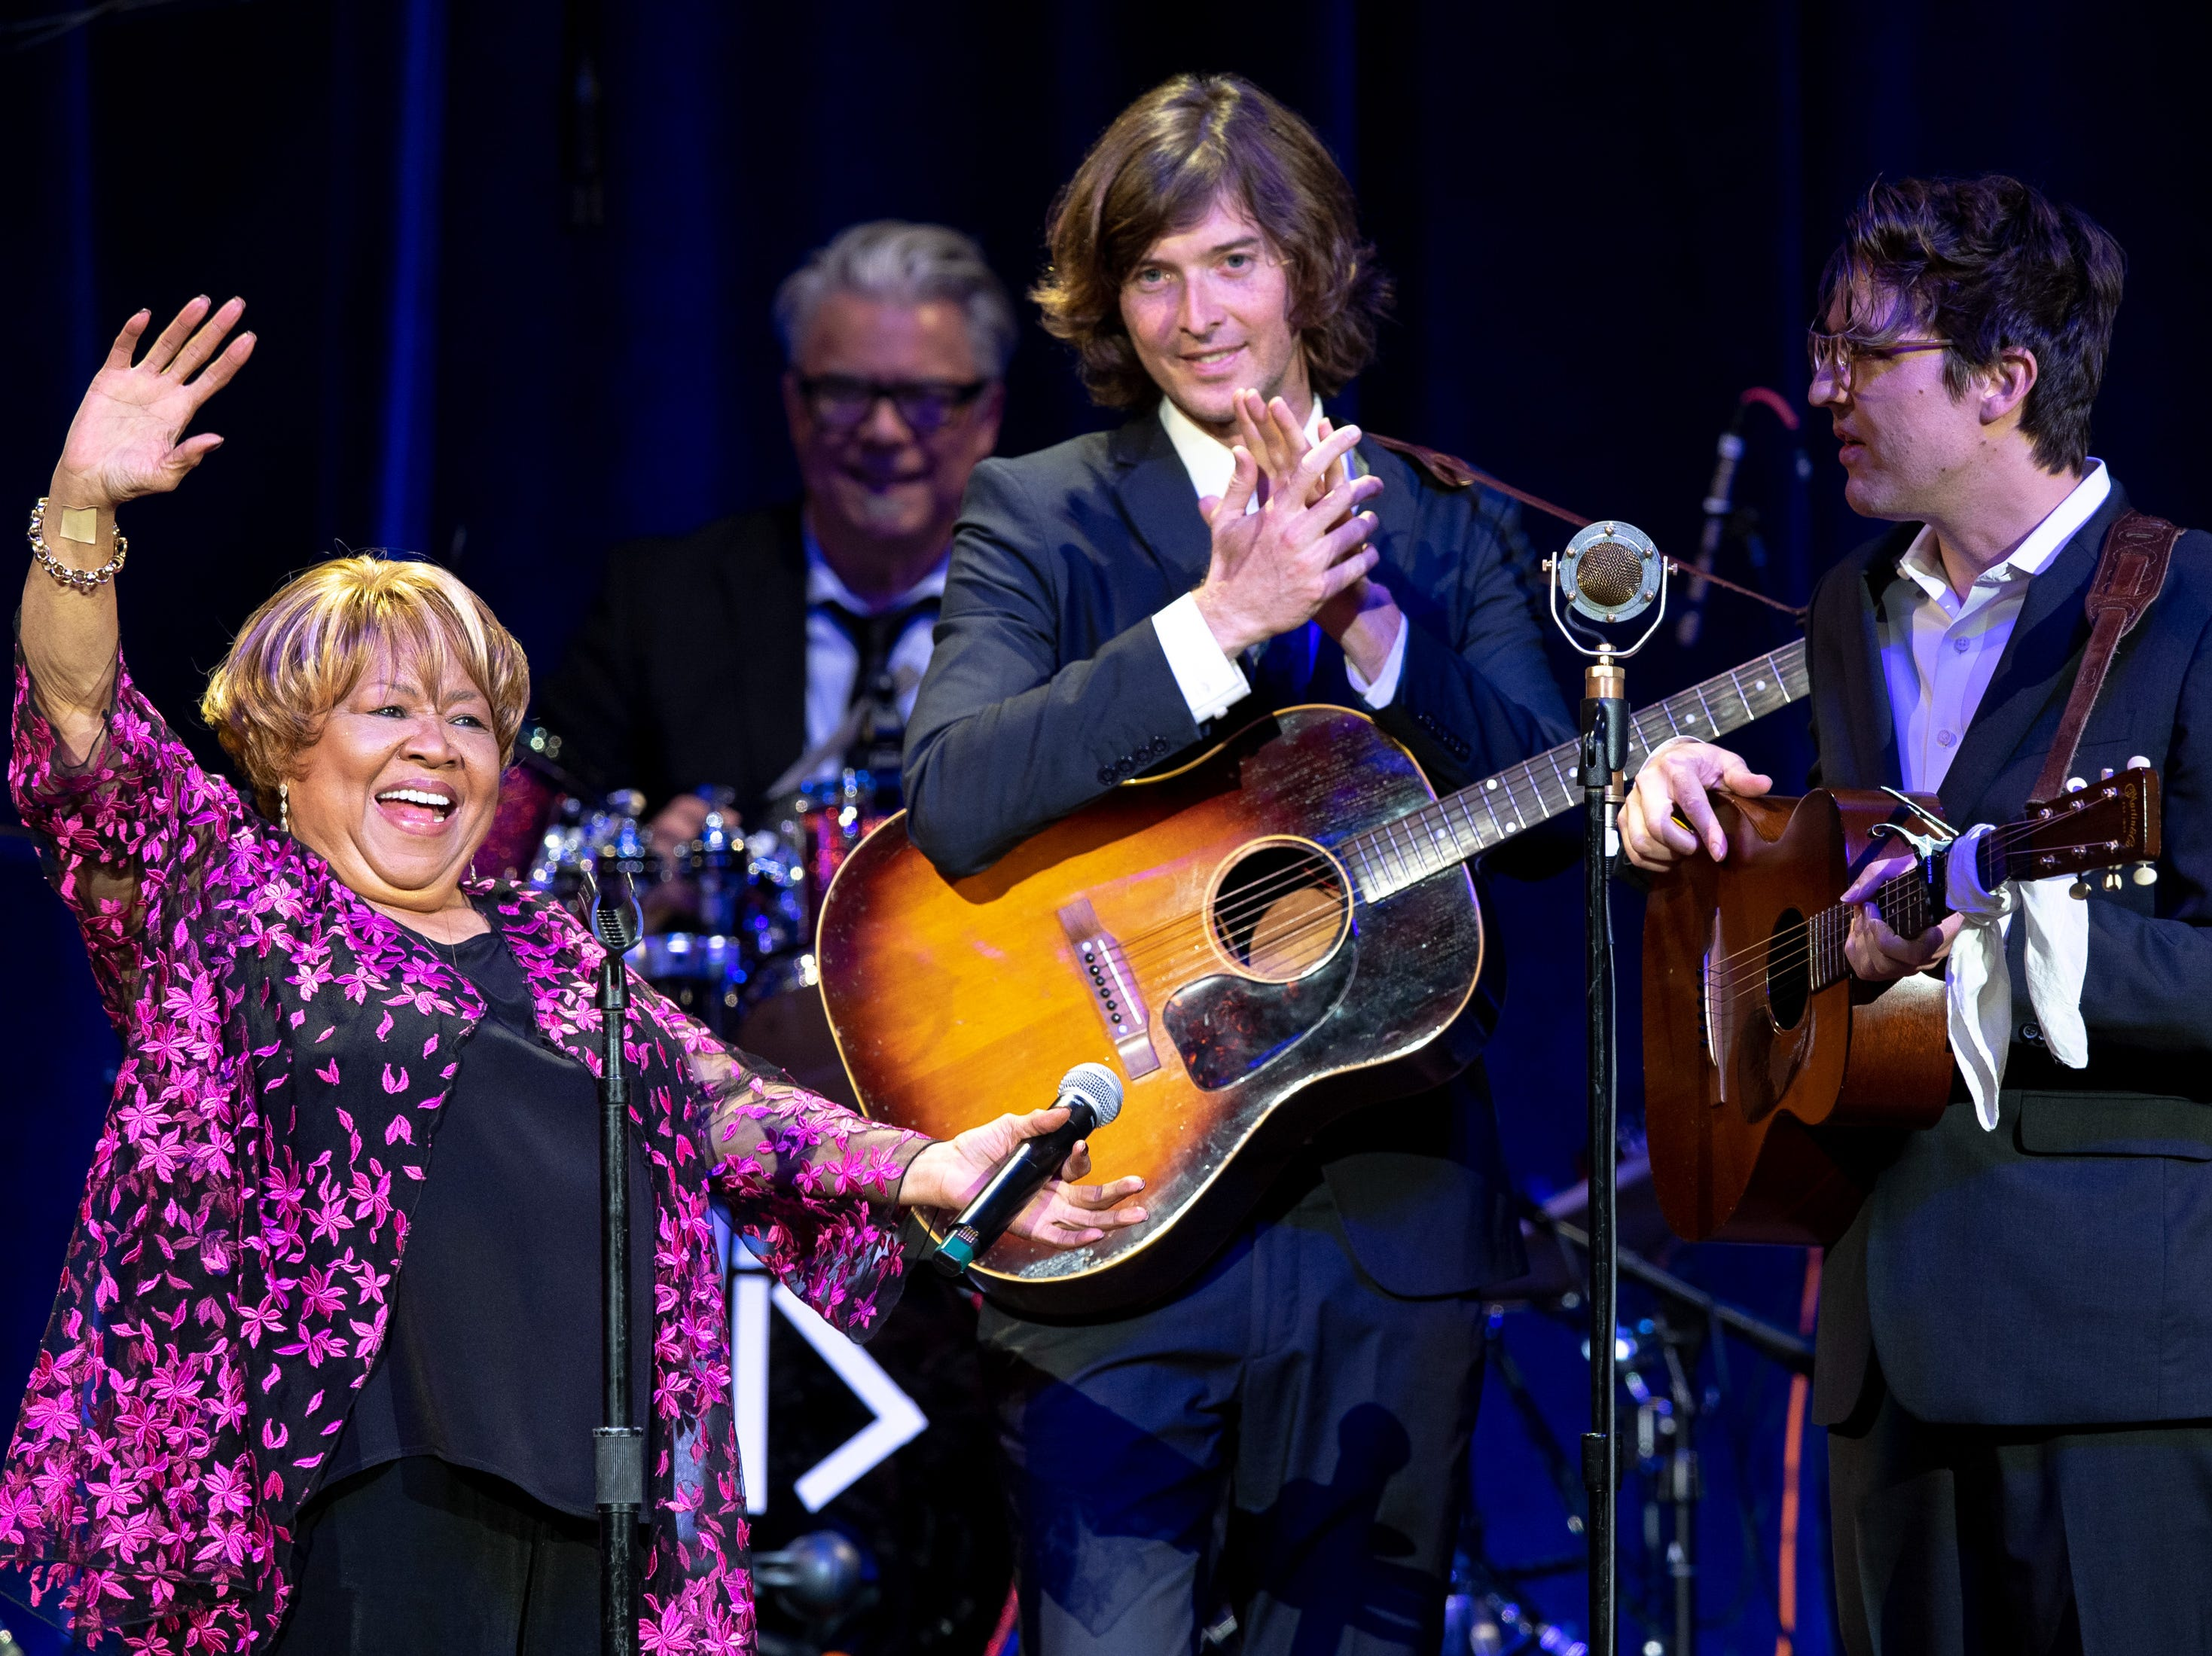 Mavis Staples performs with The Milk Carton Kids during the Mavis and Friends concert at the Ryman Auditorium in Nashville, Tenn., Wednesday, May 15, 2019.